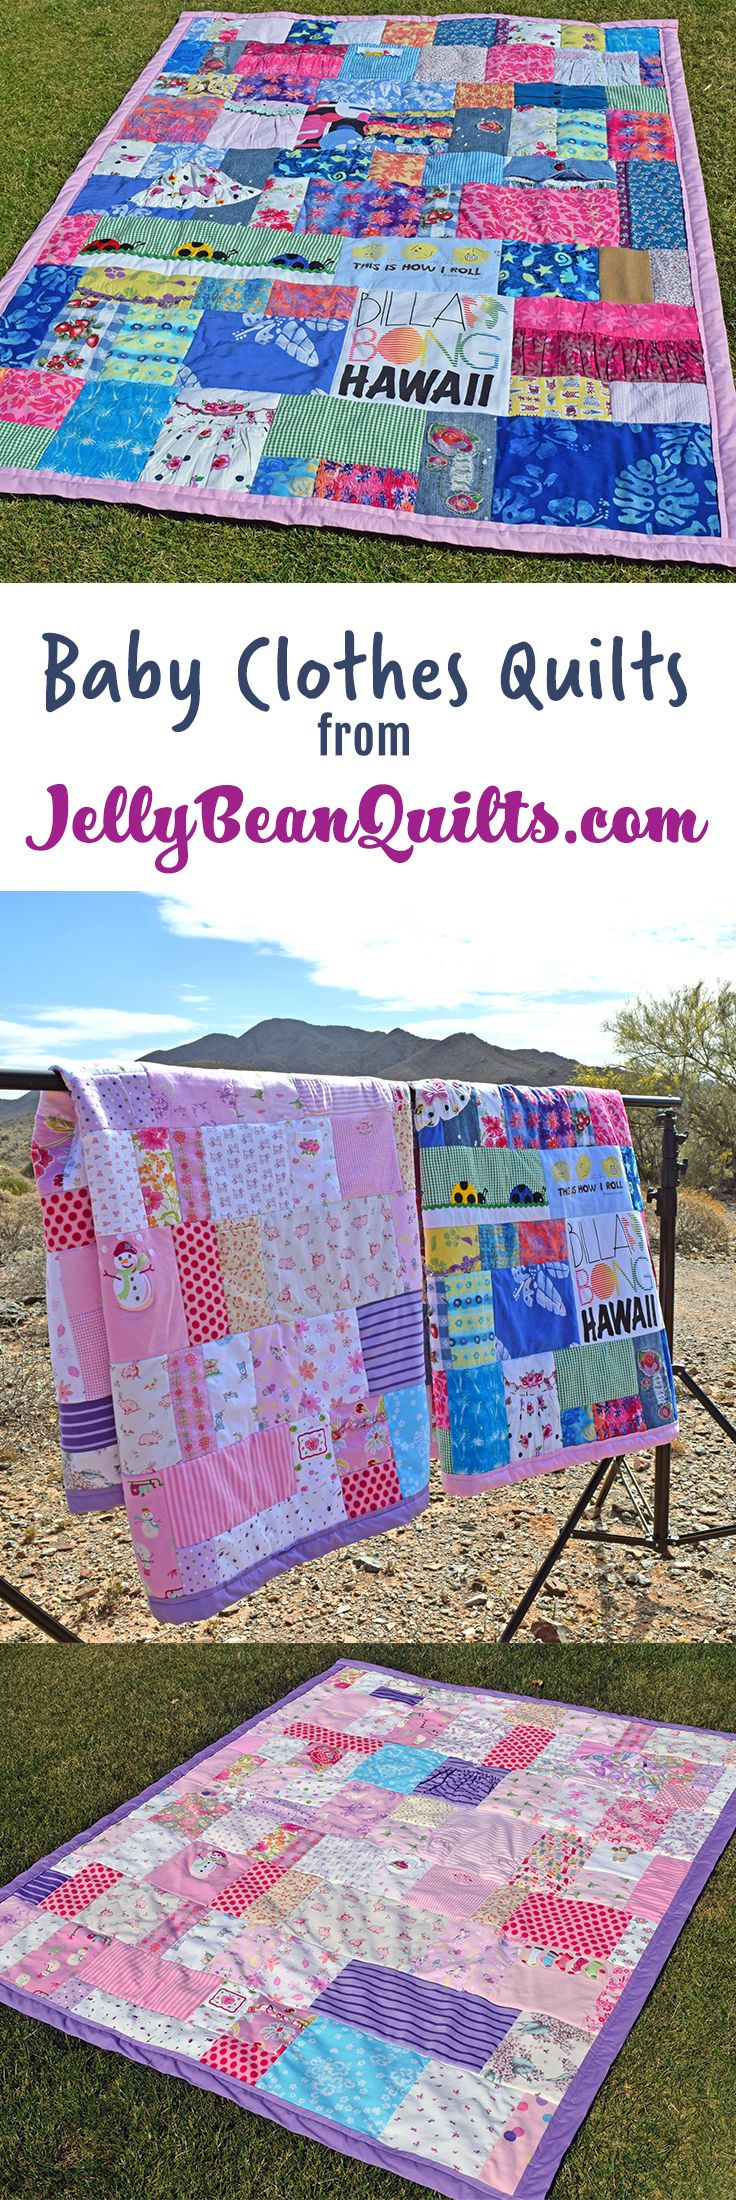 Baby Clothes Quilts Made From Onesies From Jellybeanquilts